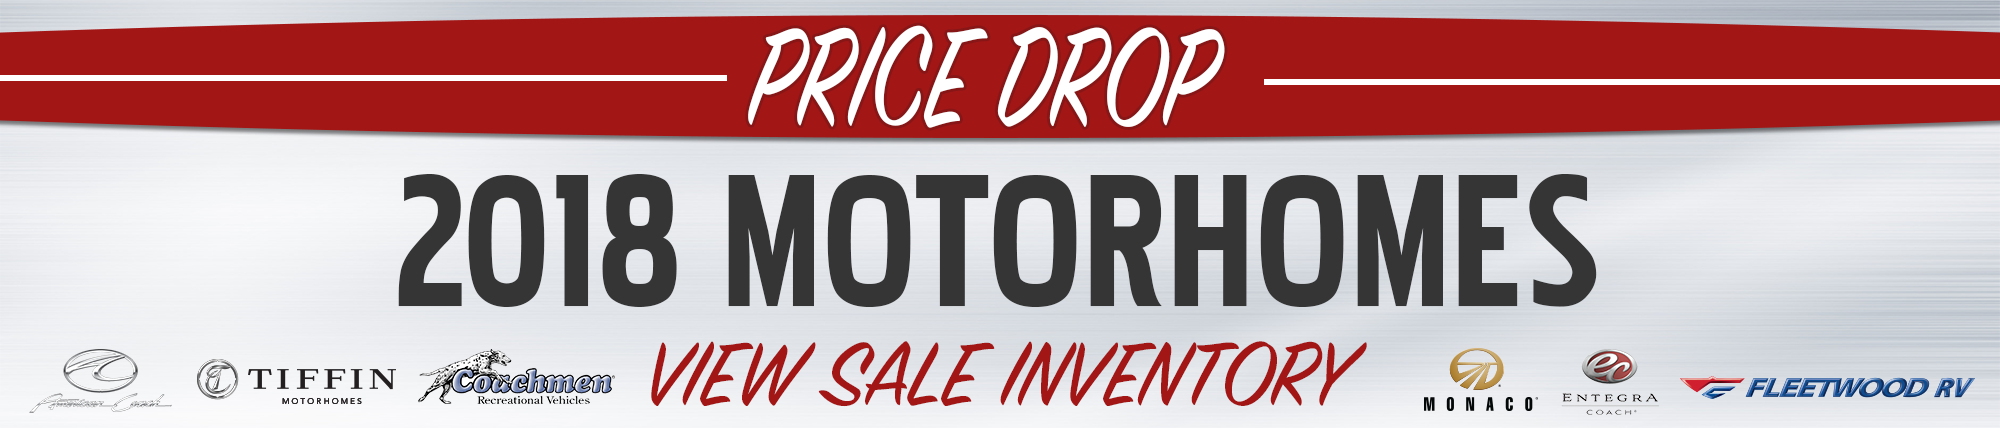 Motorhome Price Drop